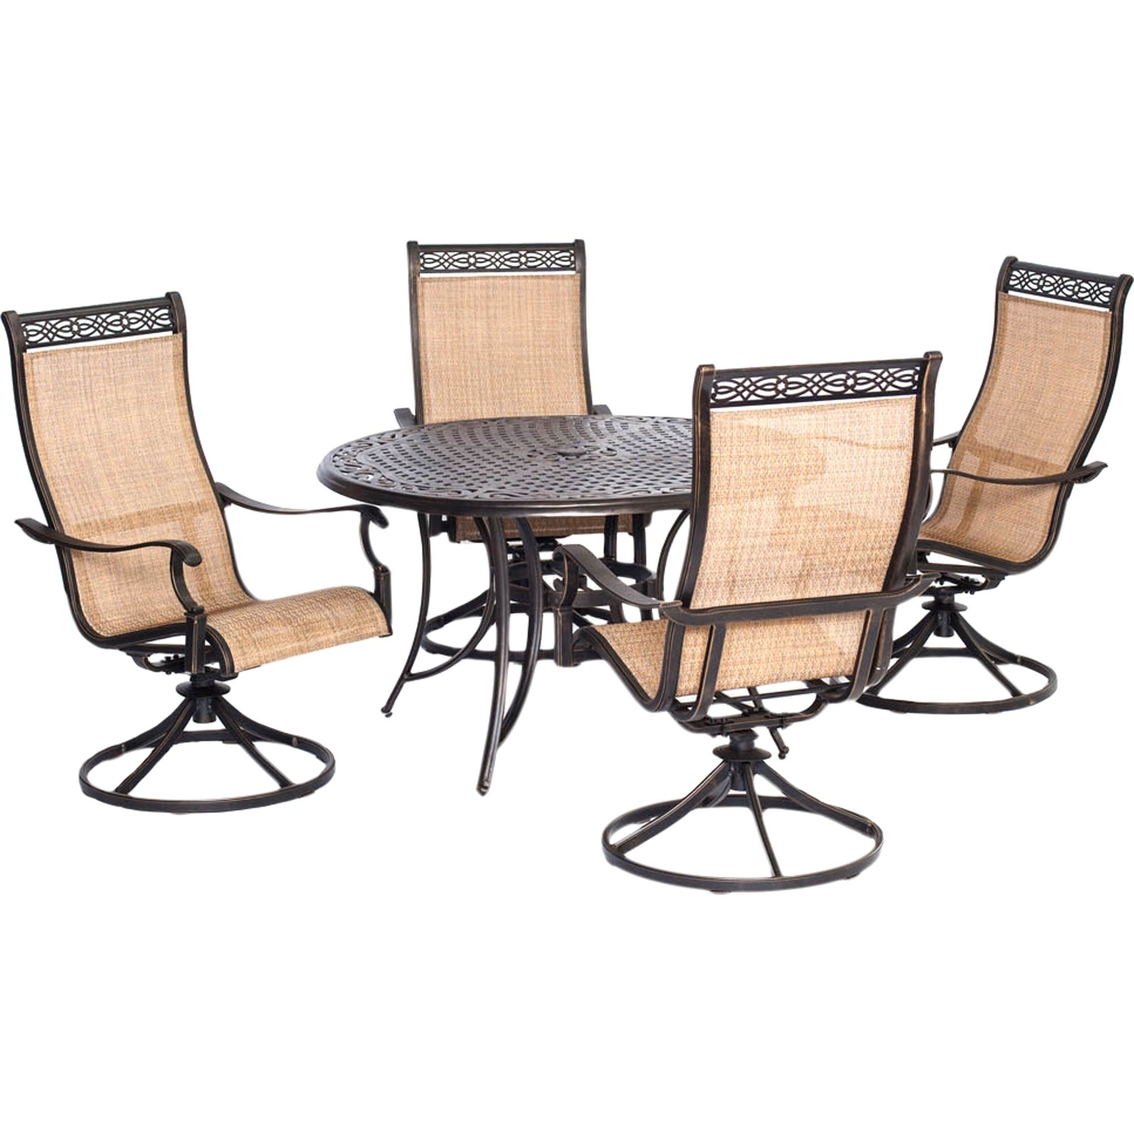 Garden Oasis Providence 5 Piece Swivel Dining Set: Hanover Manor 5 Pc. Outdoor Dining Set With 4 Swivel